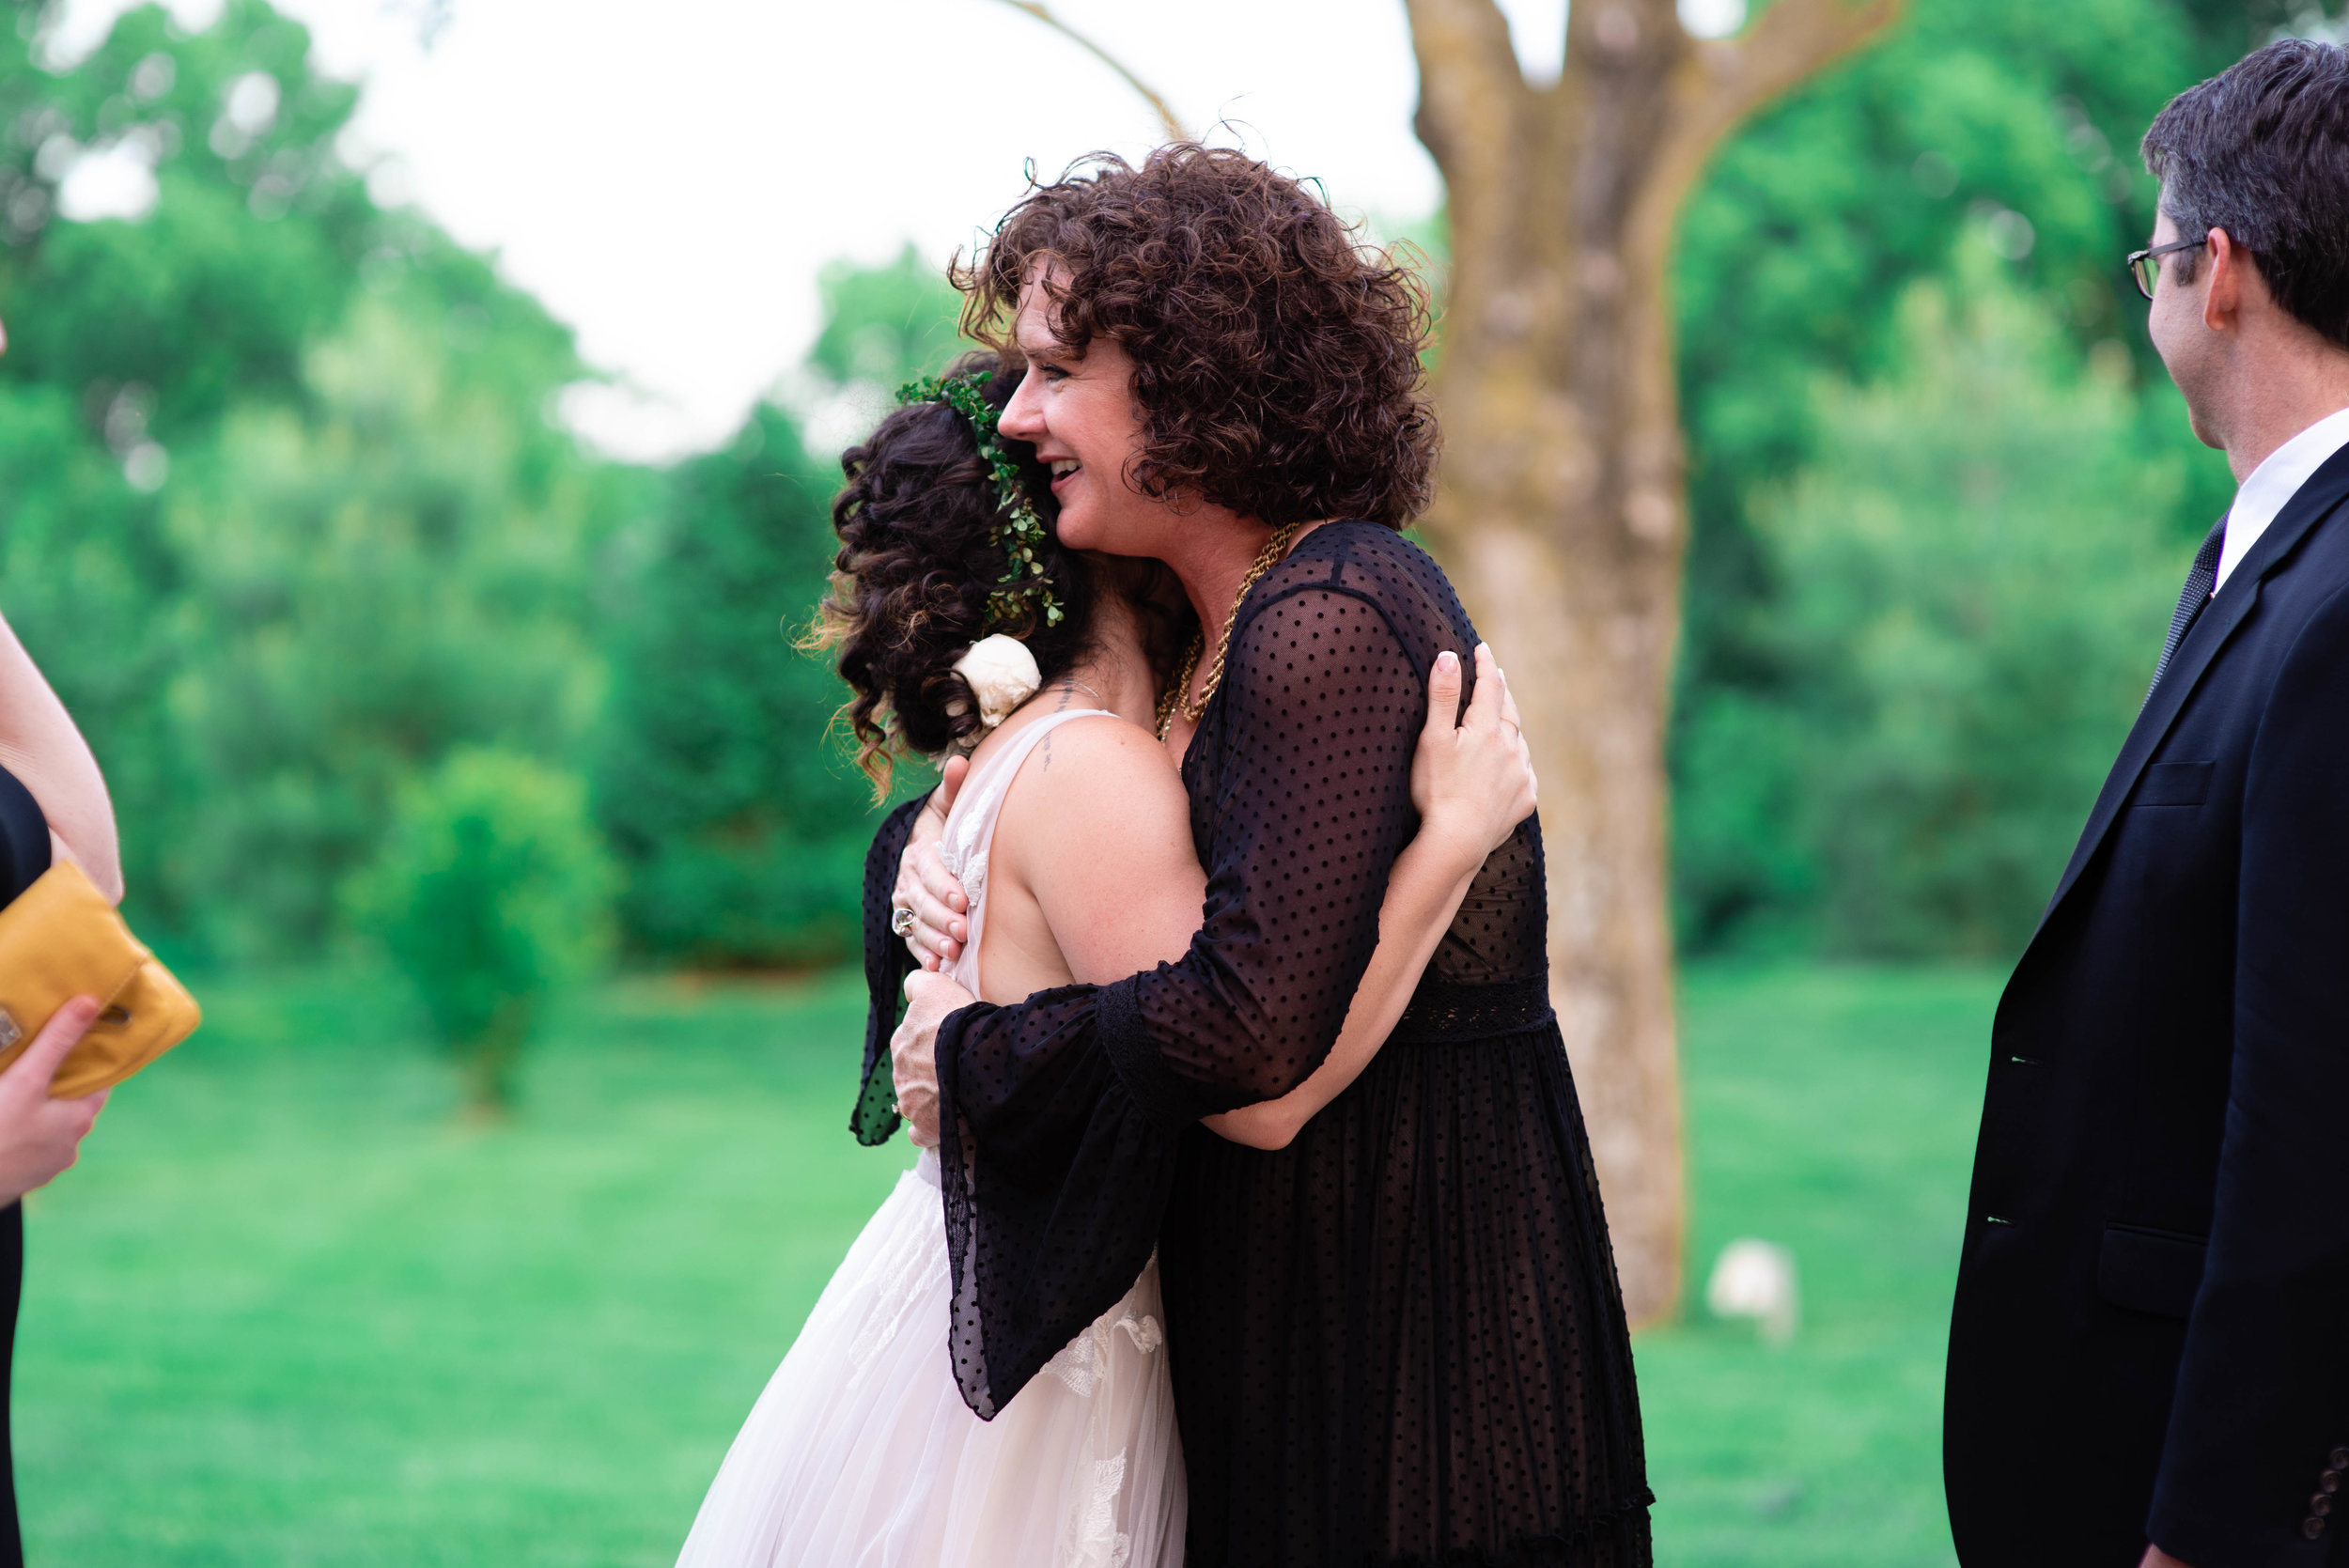 Kansas City Wedding Photography, LGEmerick